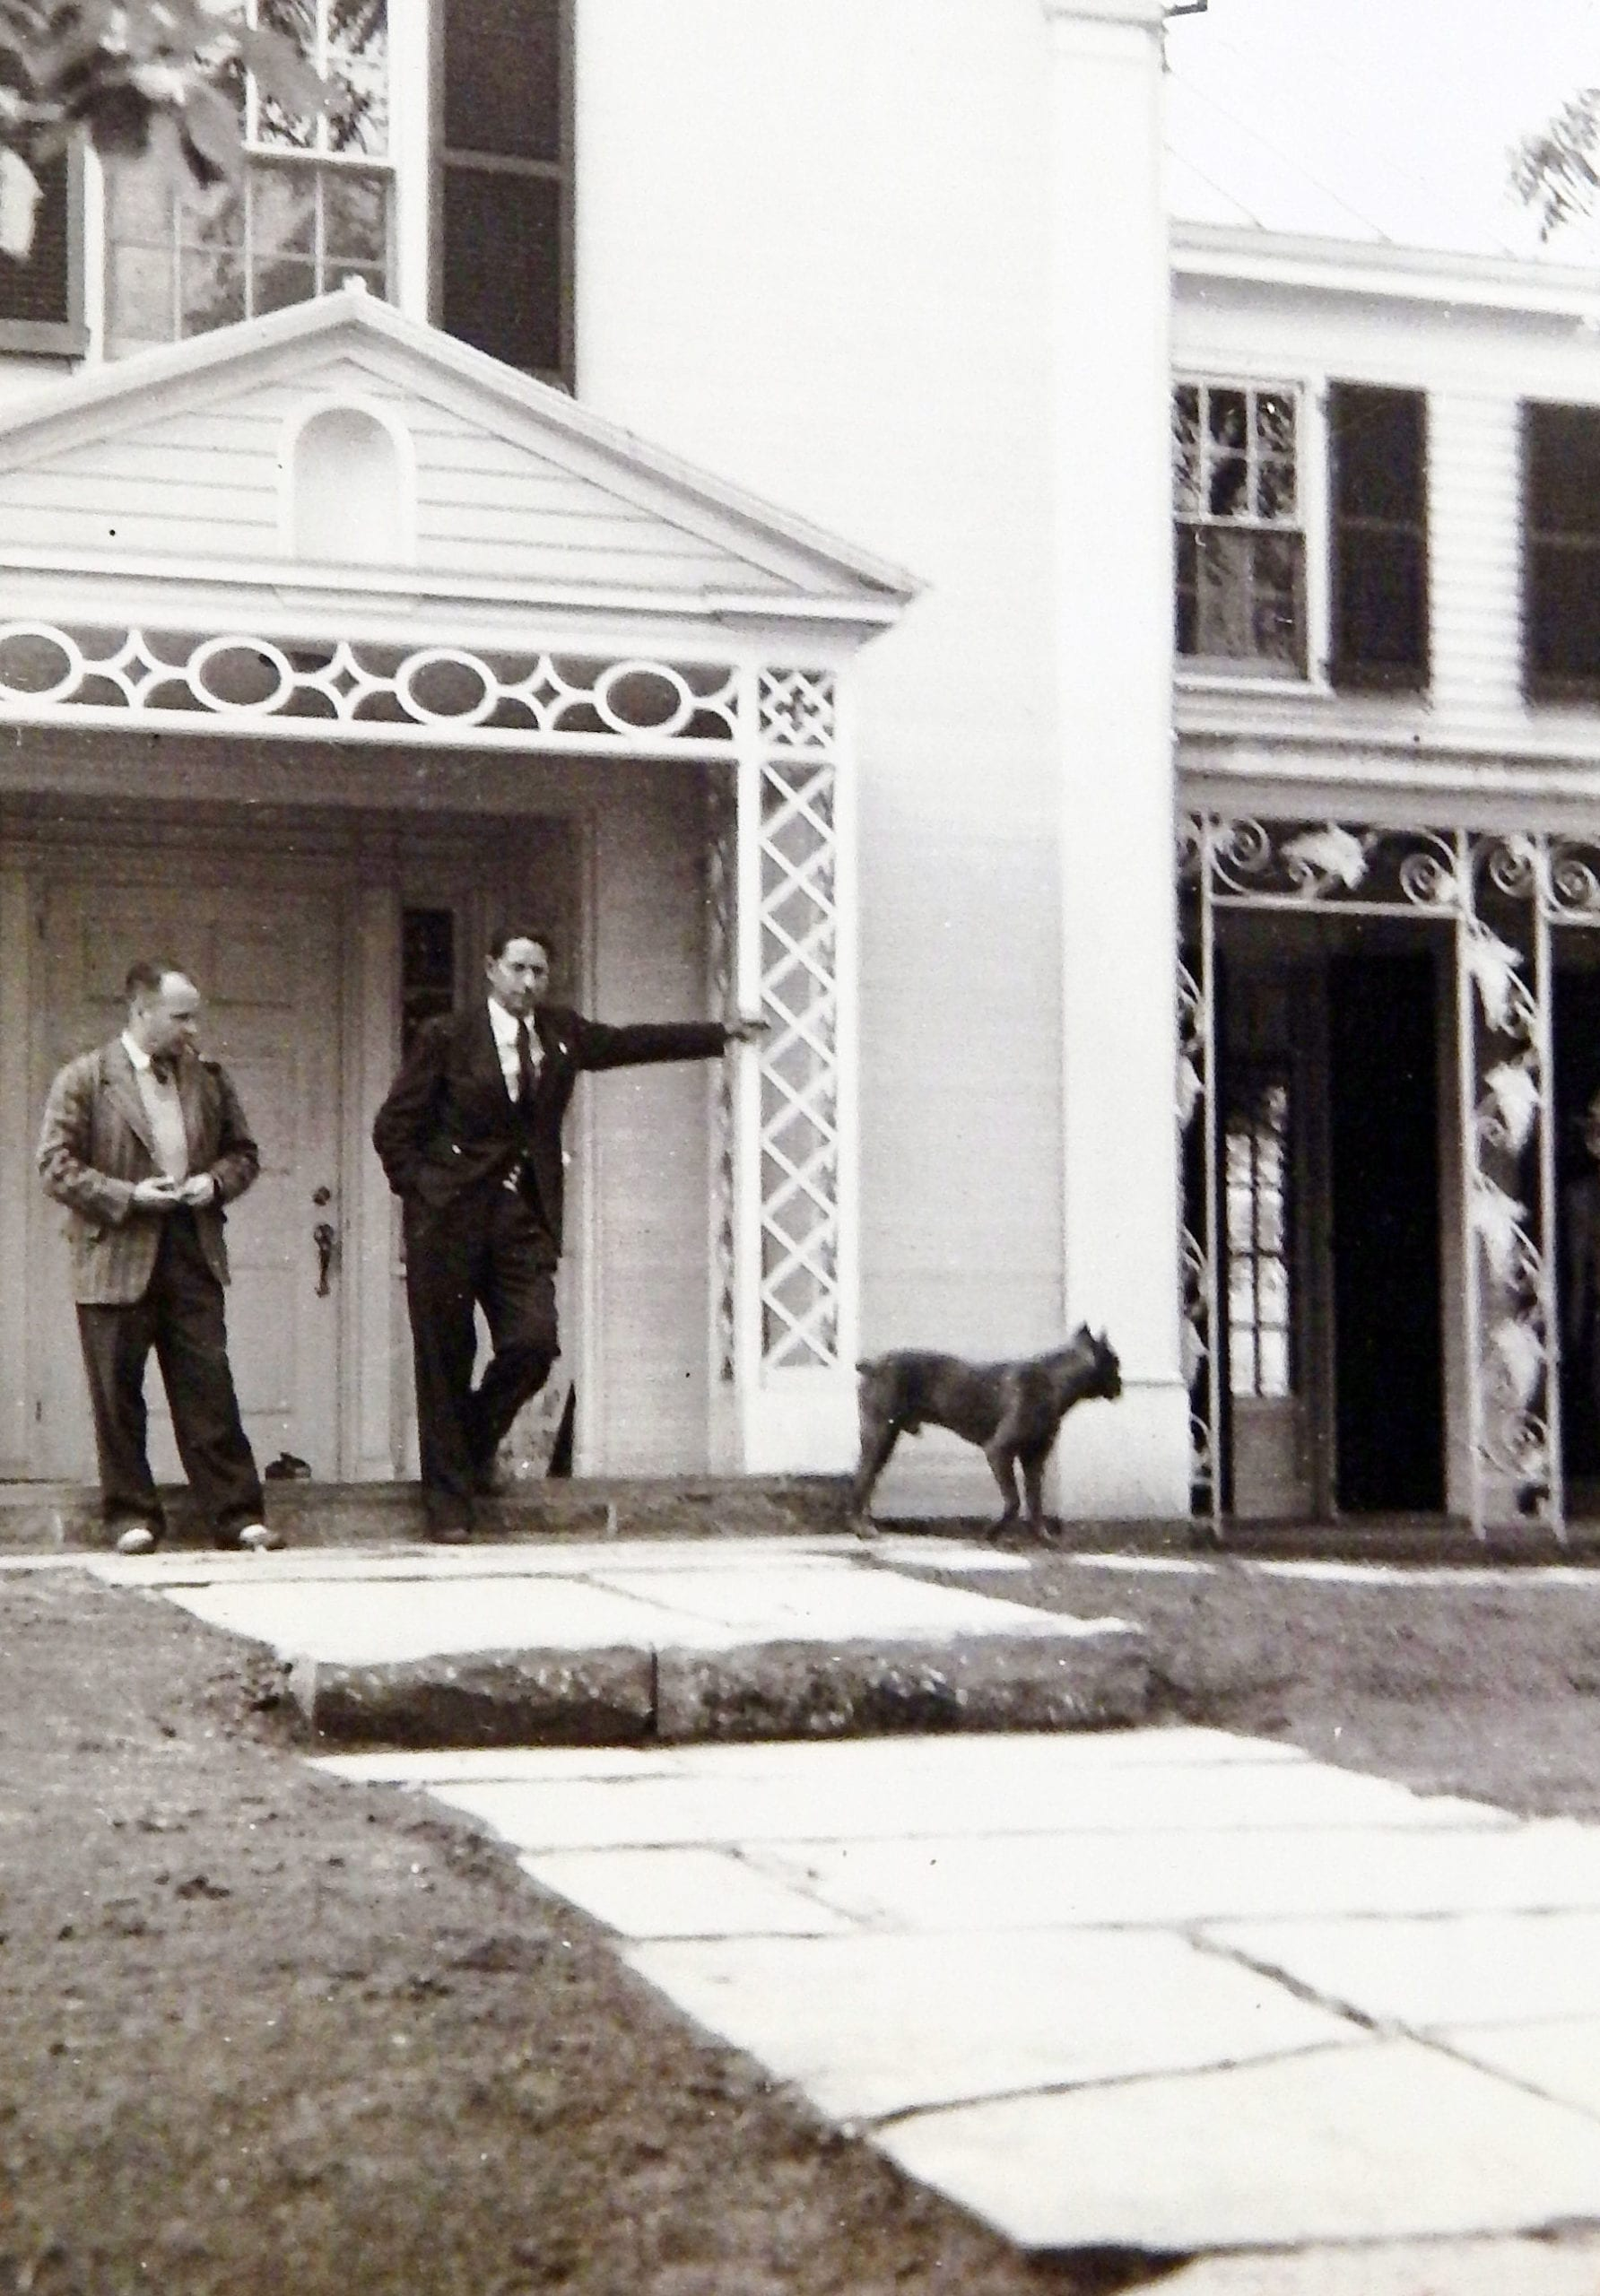 Louis Lamoreux with Louis Bromfield – probably late 1940 or early 1941. Note that the Ganesh statue has not yet been added to the niche above the entrance.